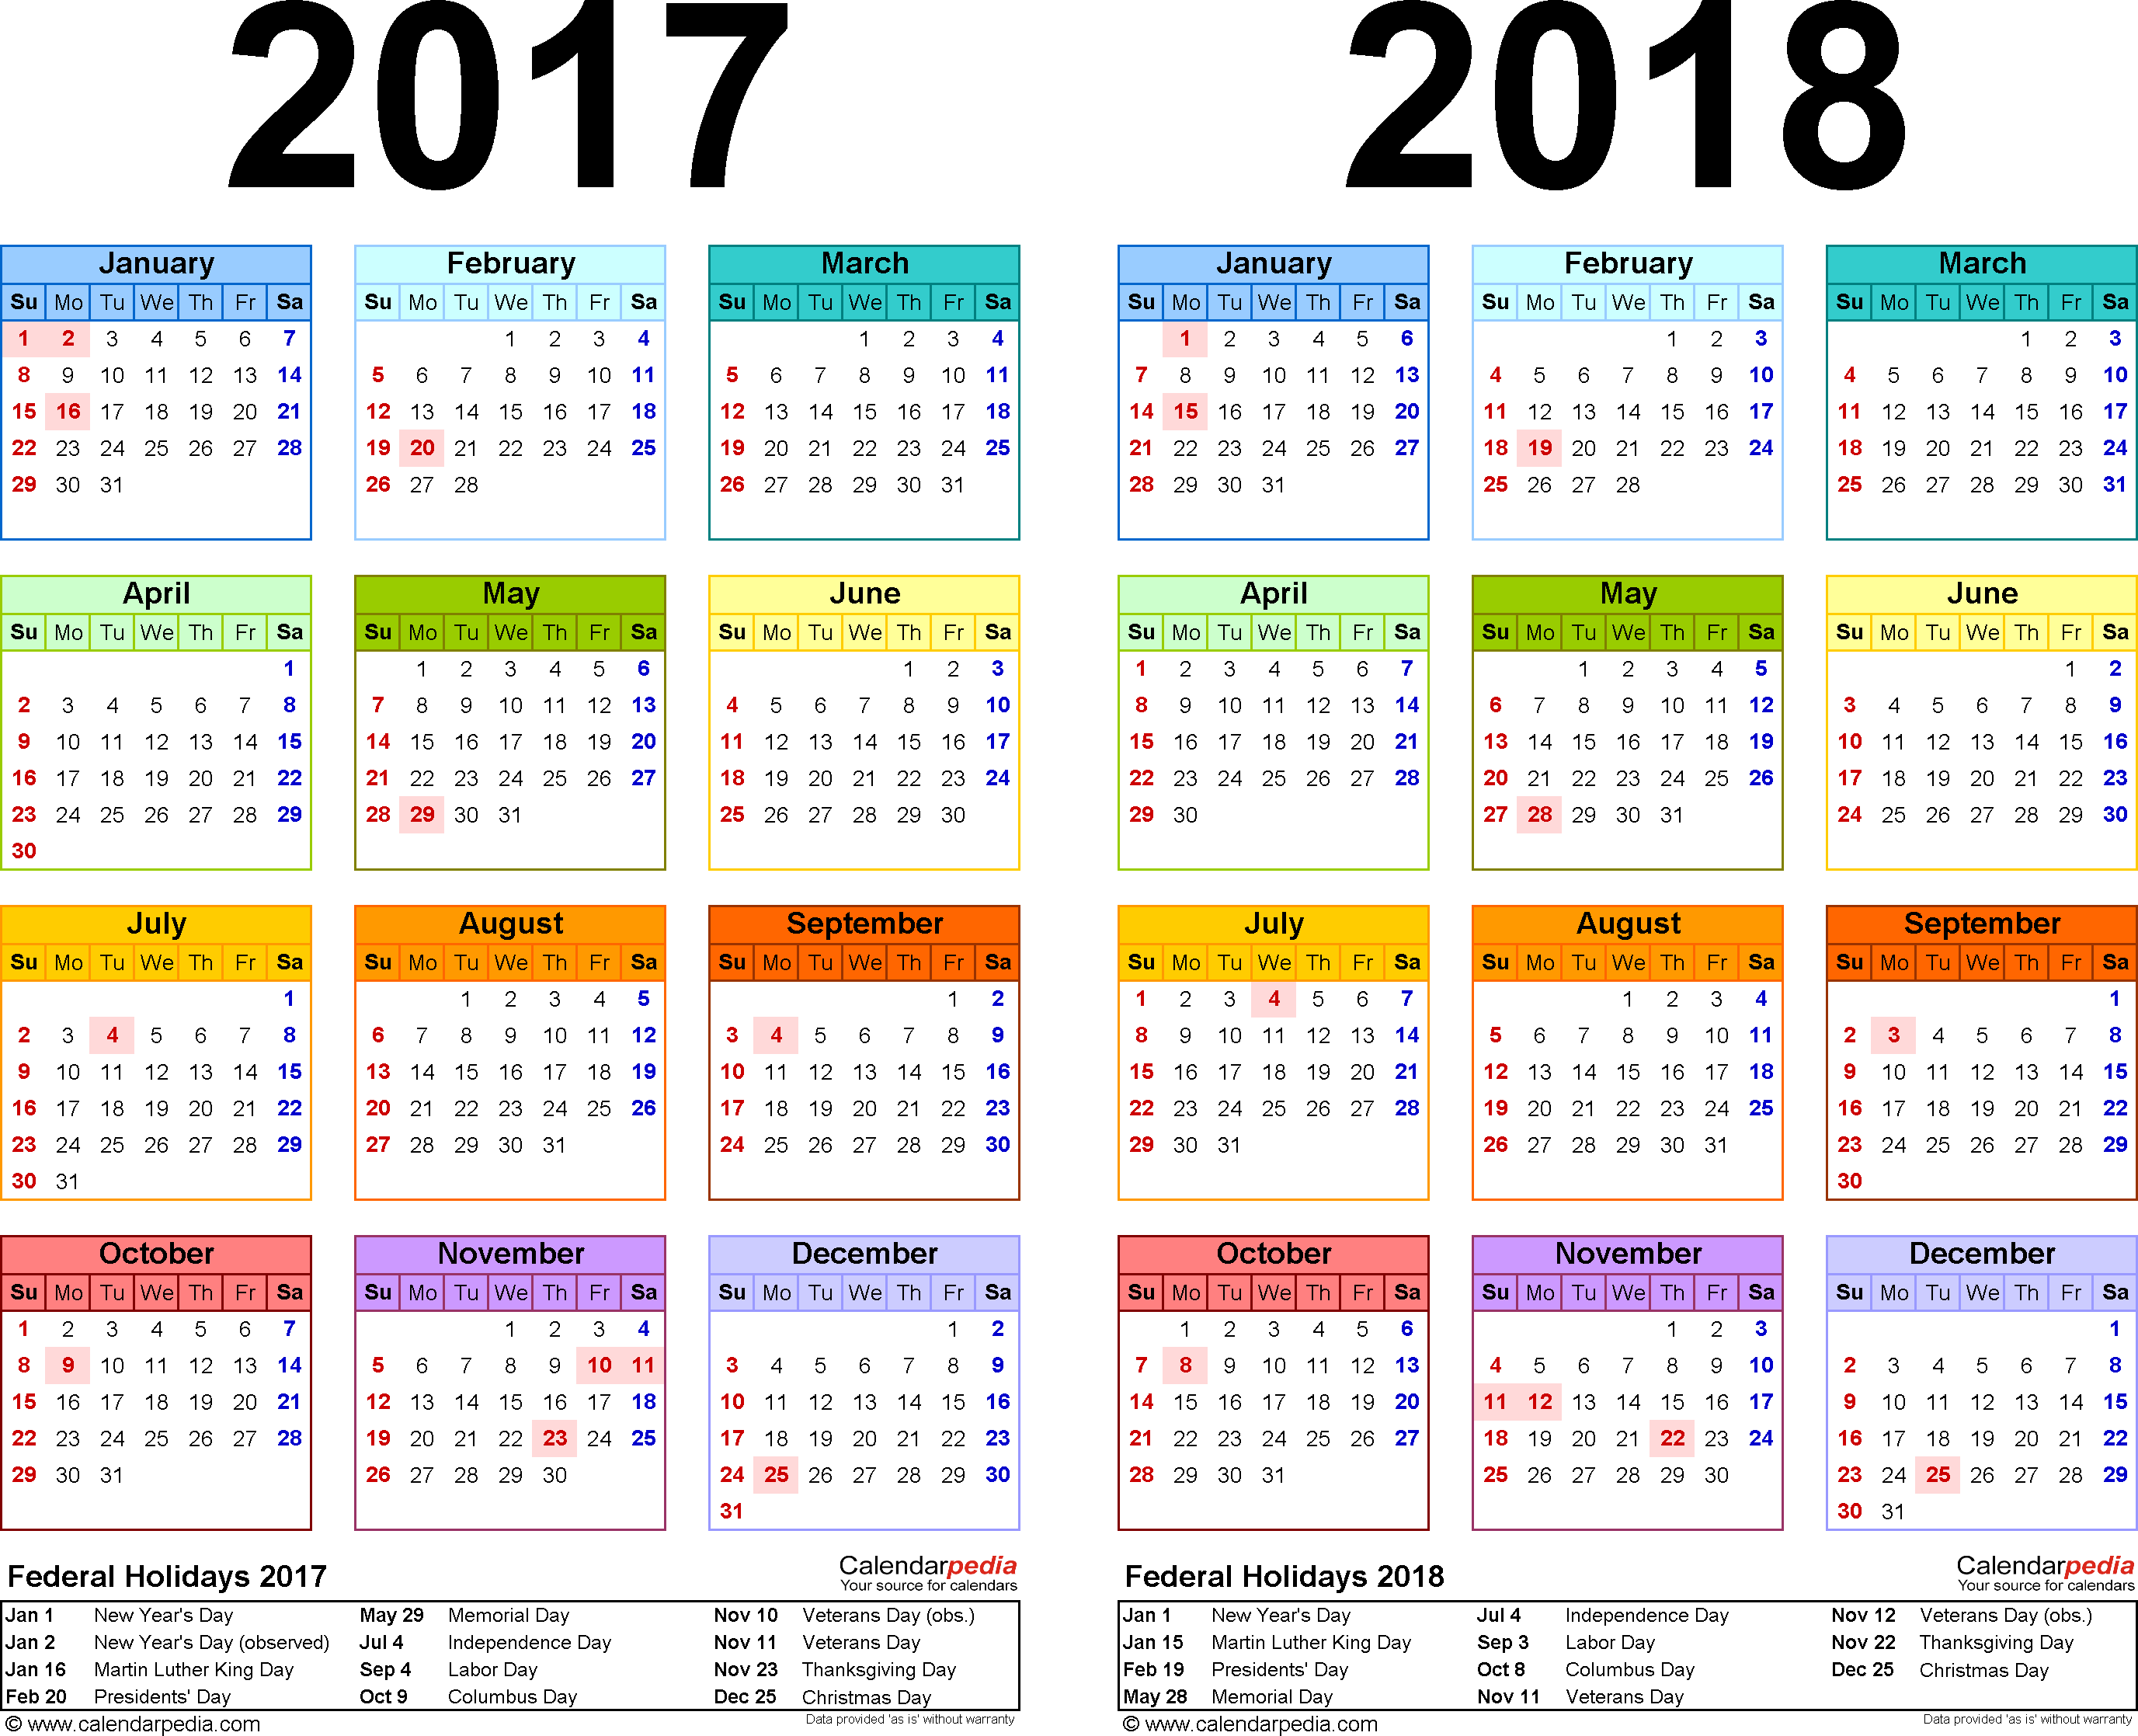 Template 2: PDF template for two year calendar 2017/2018 (landscape orientation, 1 page, in color)